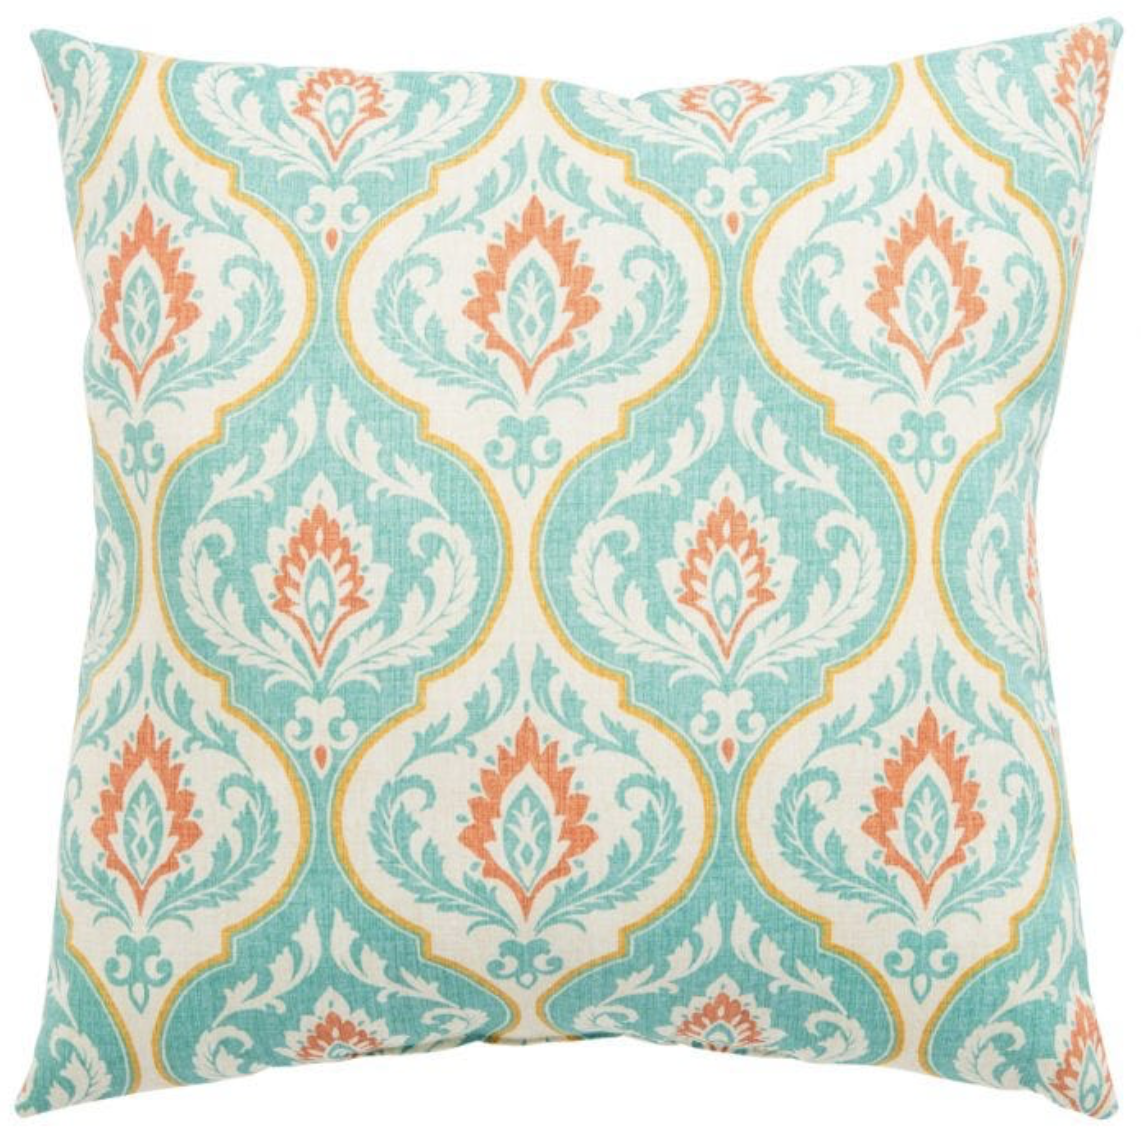 Veranda Teal Arabesque Pillow